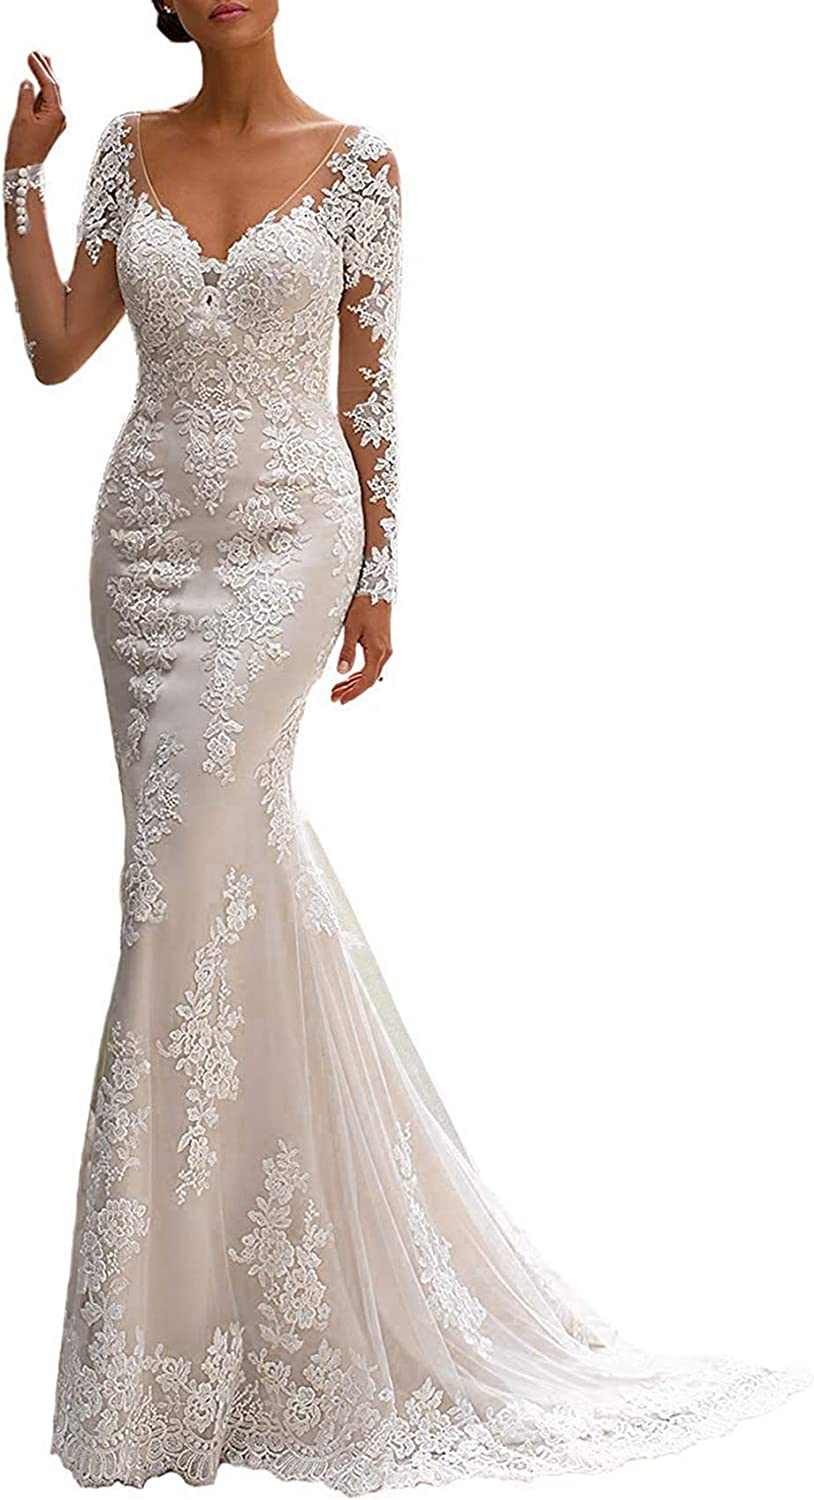 BeautBoy Women's Long Sleeves Mermaid Wedding Dress Lace Appliques V Neck Bridal Gown Plus Size W09 Ivory 22W